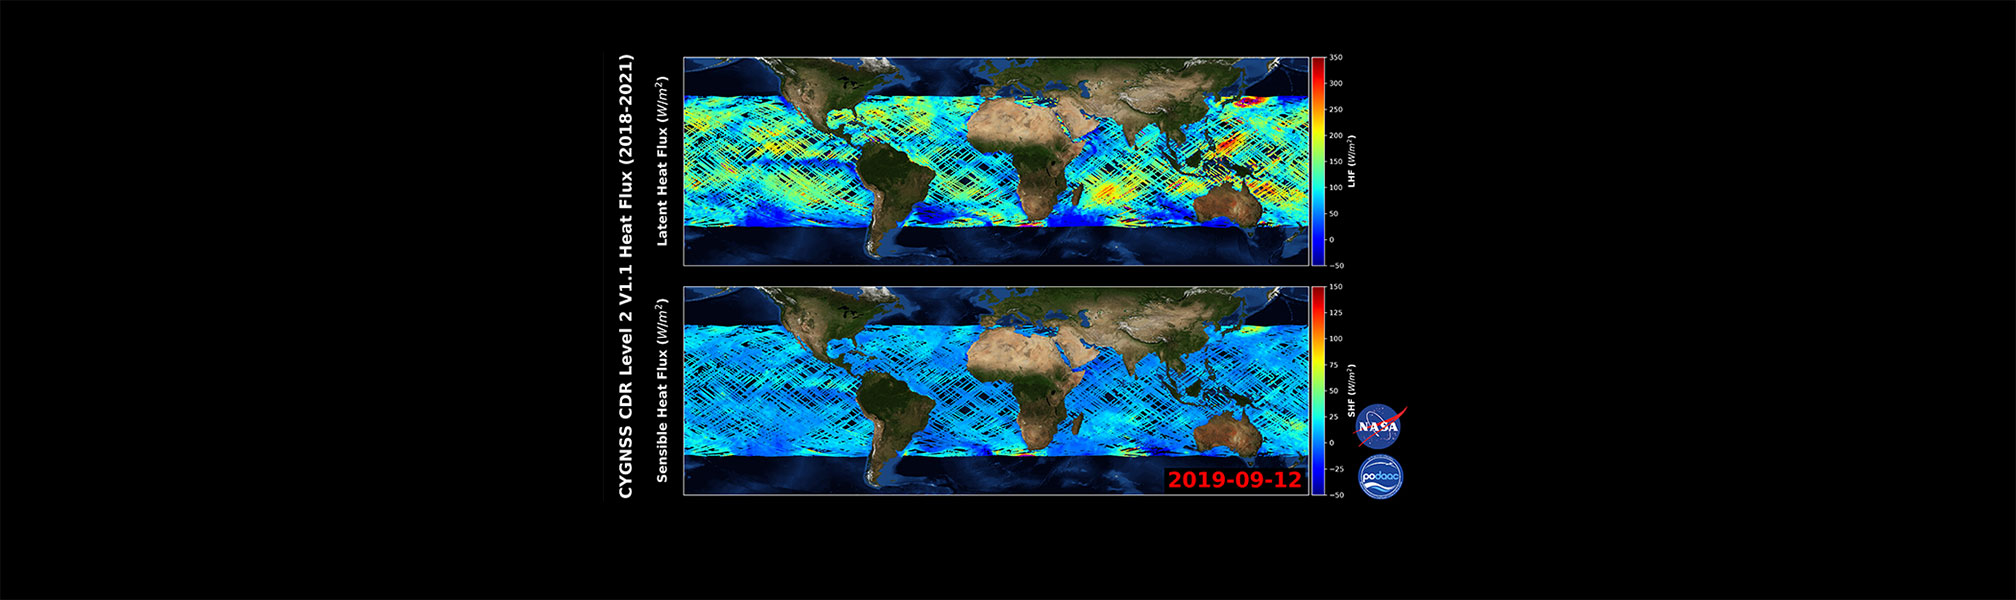 This graphic illustrates information gathered from the CYGNSS Level 2 Ocean Surface Heat Flux CDR Version 1.1 Dataset Release